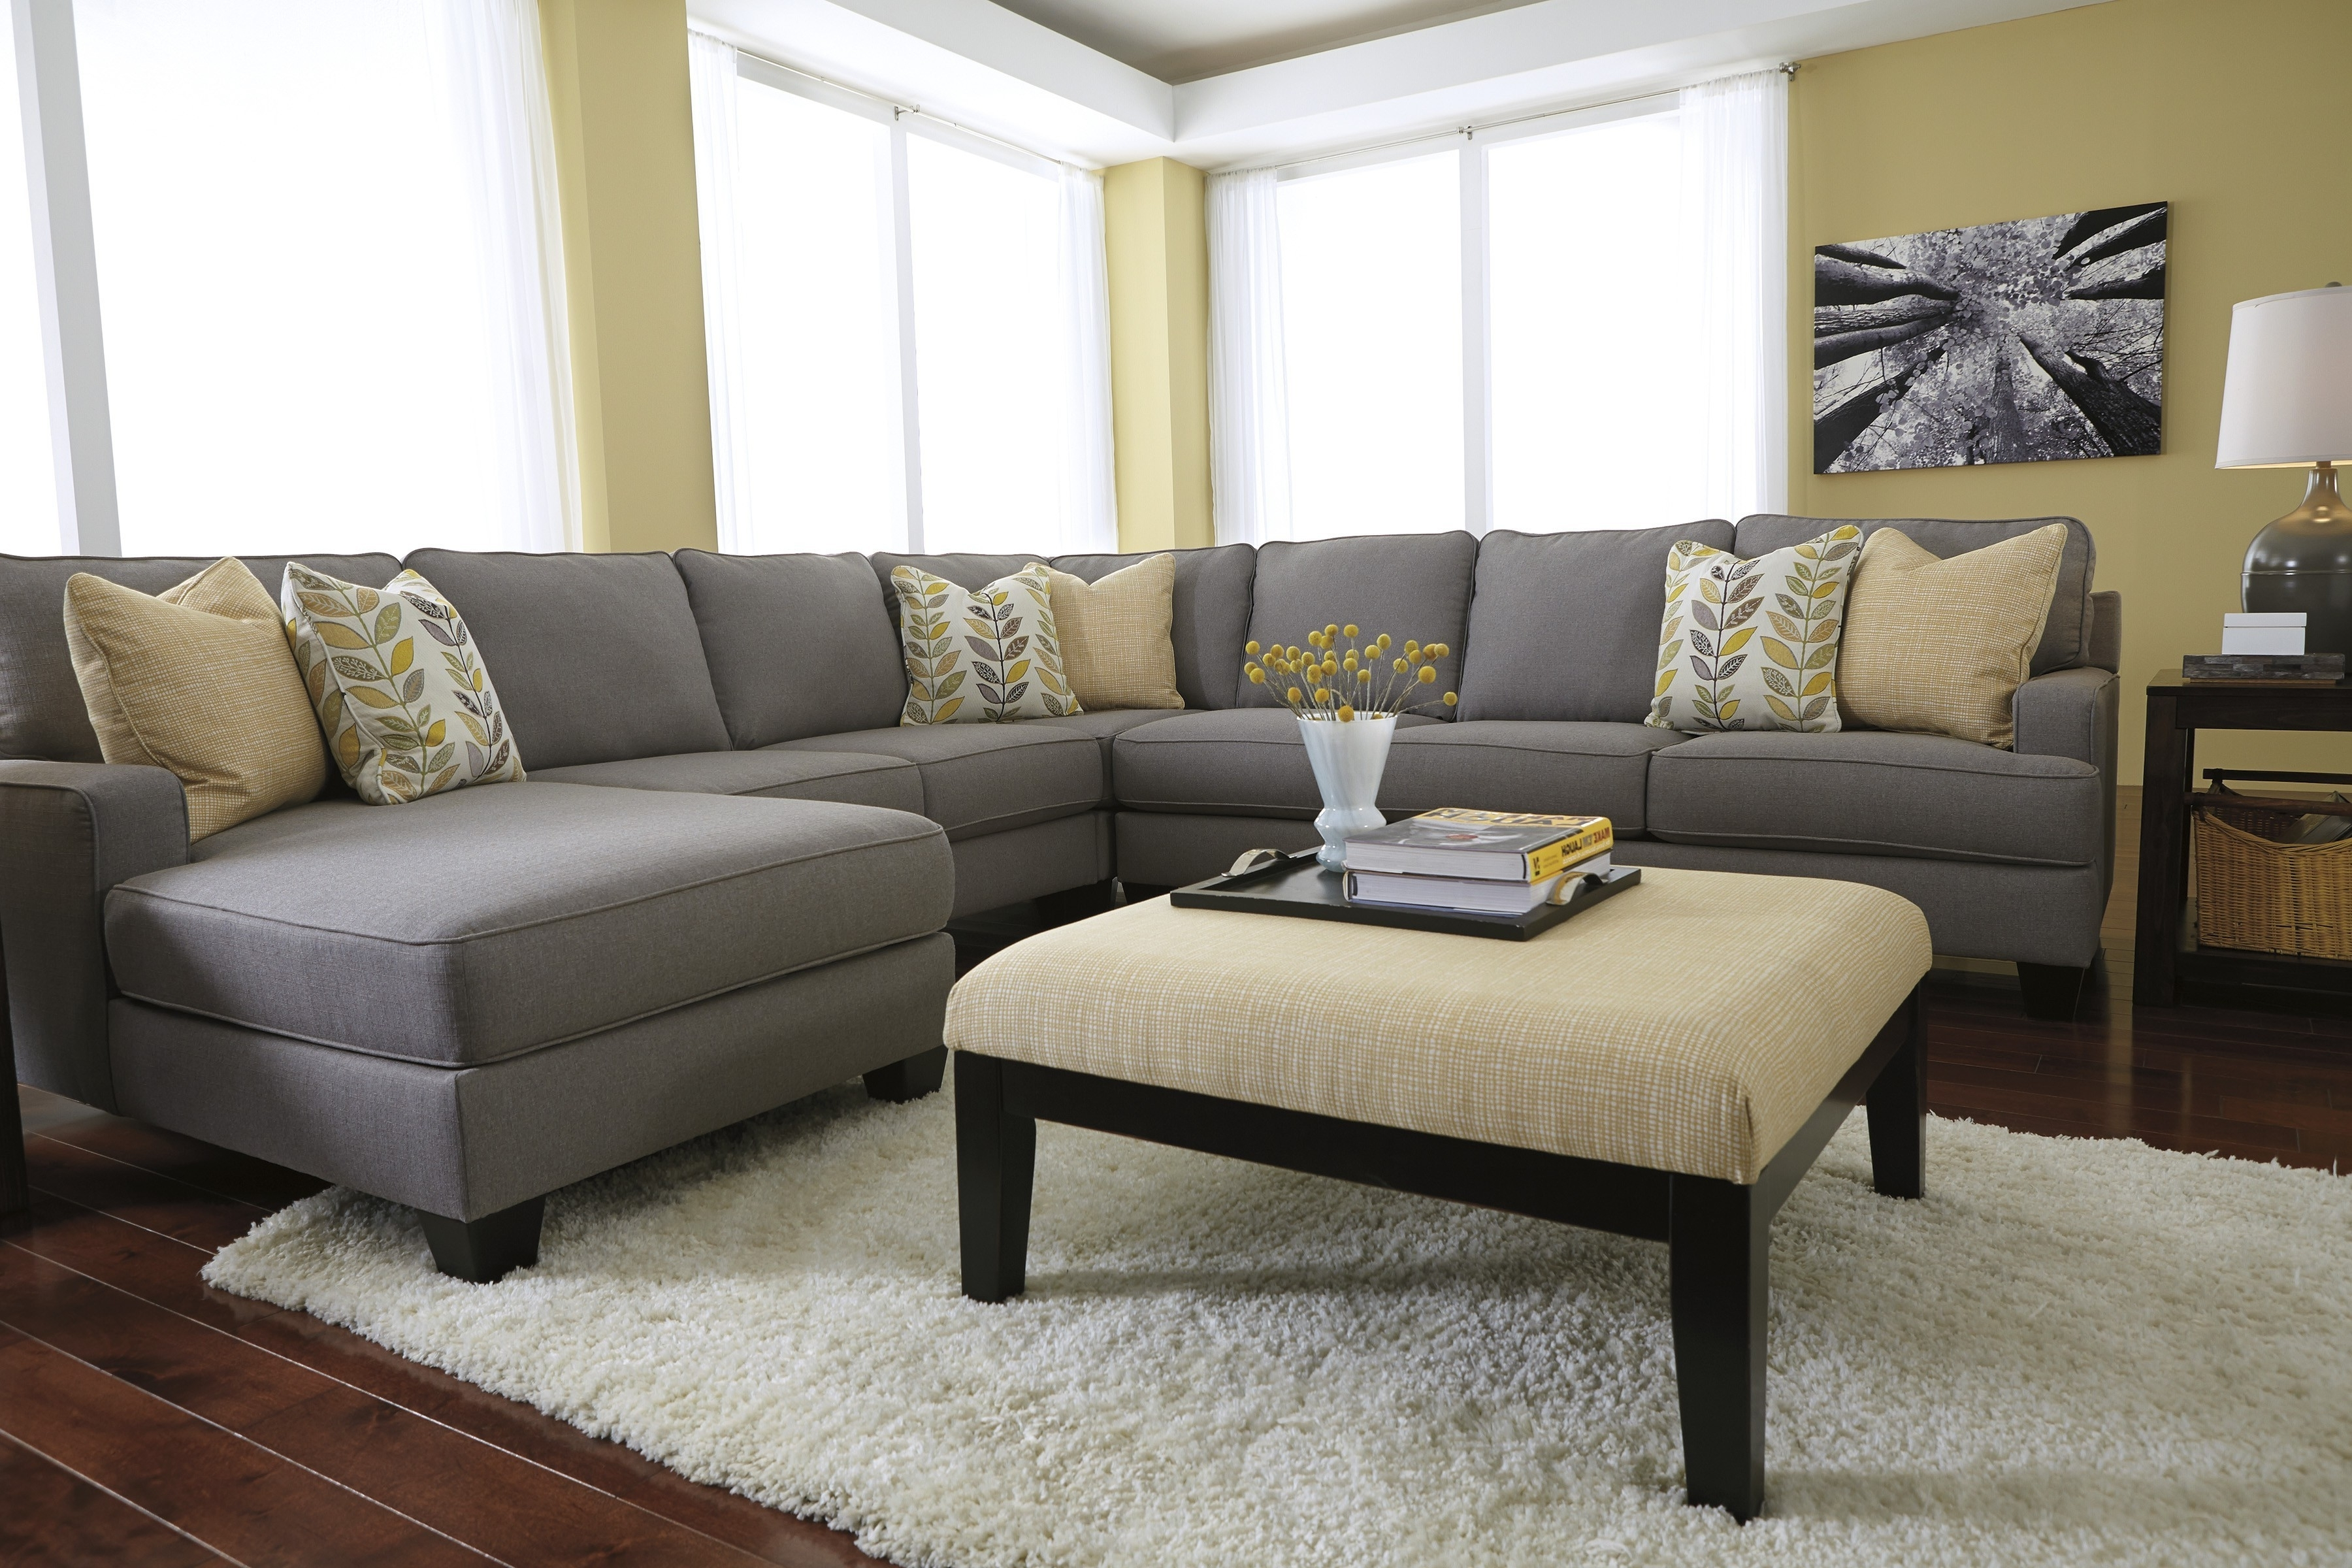 Sectional Sofas Decorating For Well Known Home Design : Extraordinary Best Modern Fabric Sectional Sofas (View 7 of 15)